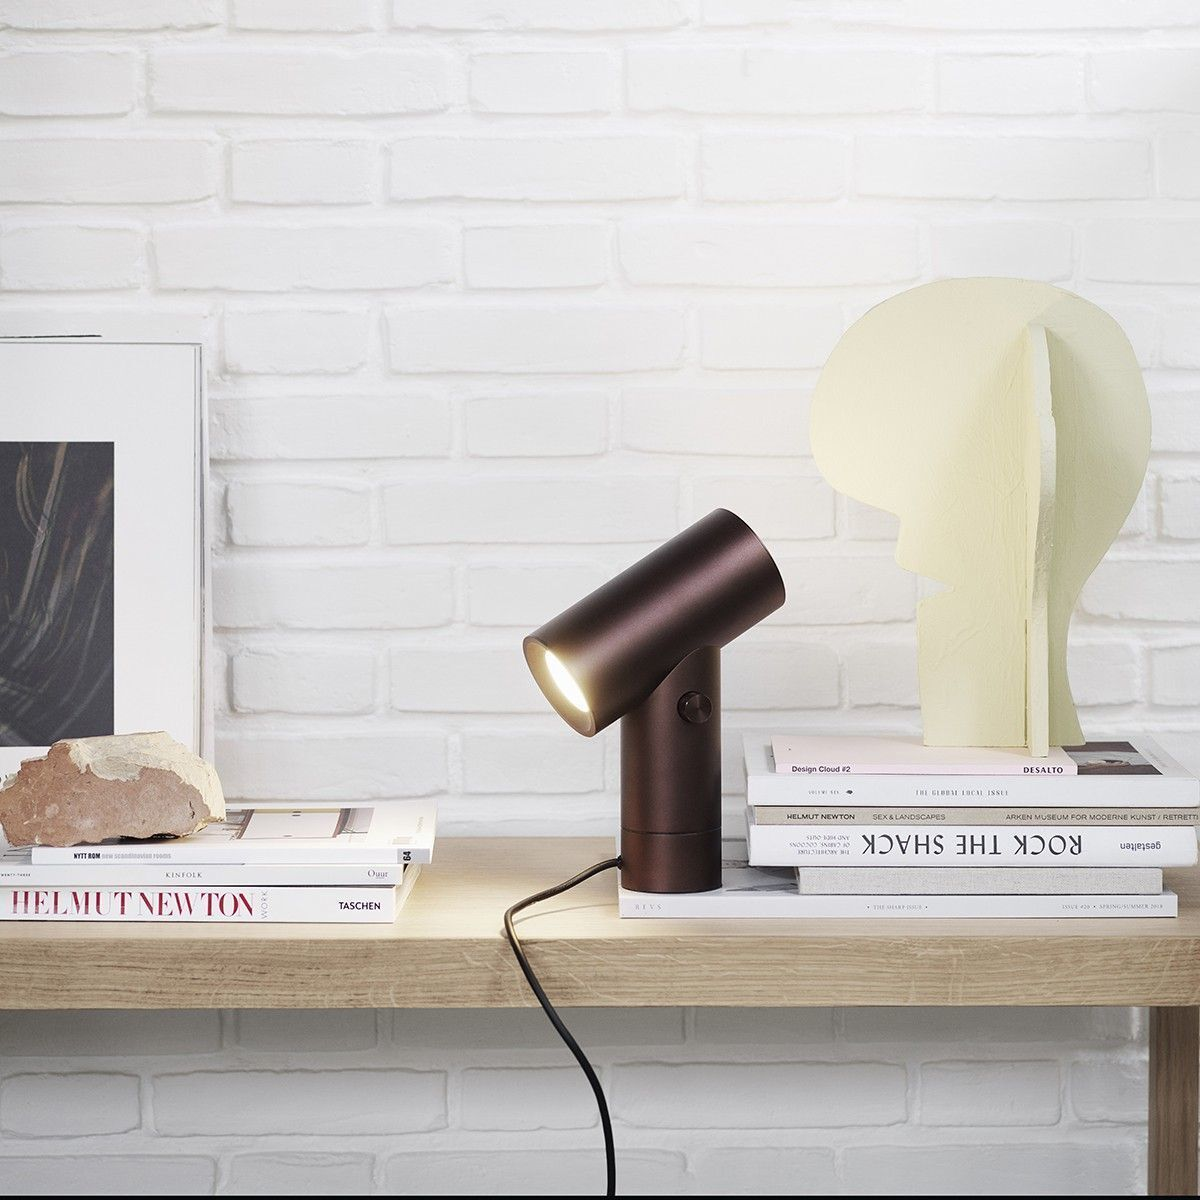 19 -A small contemporary lamp looking like a spot at Muuto